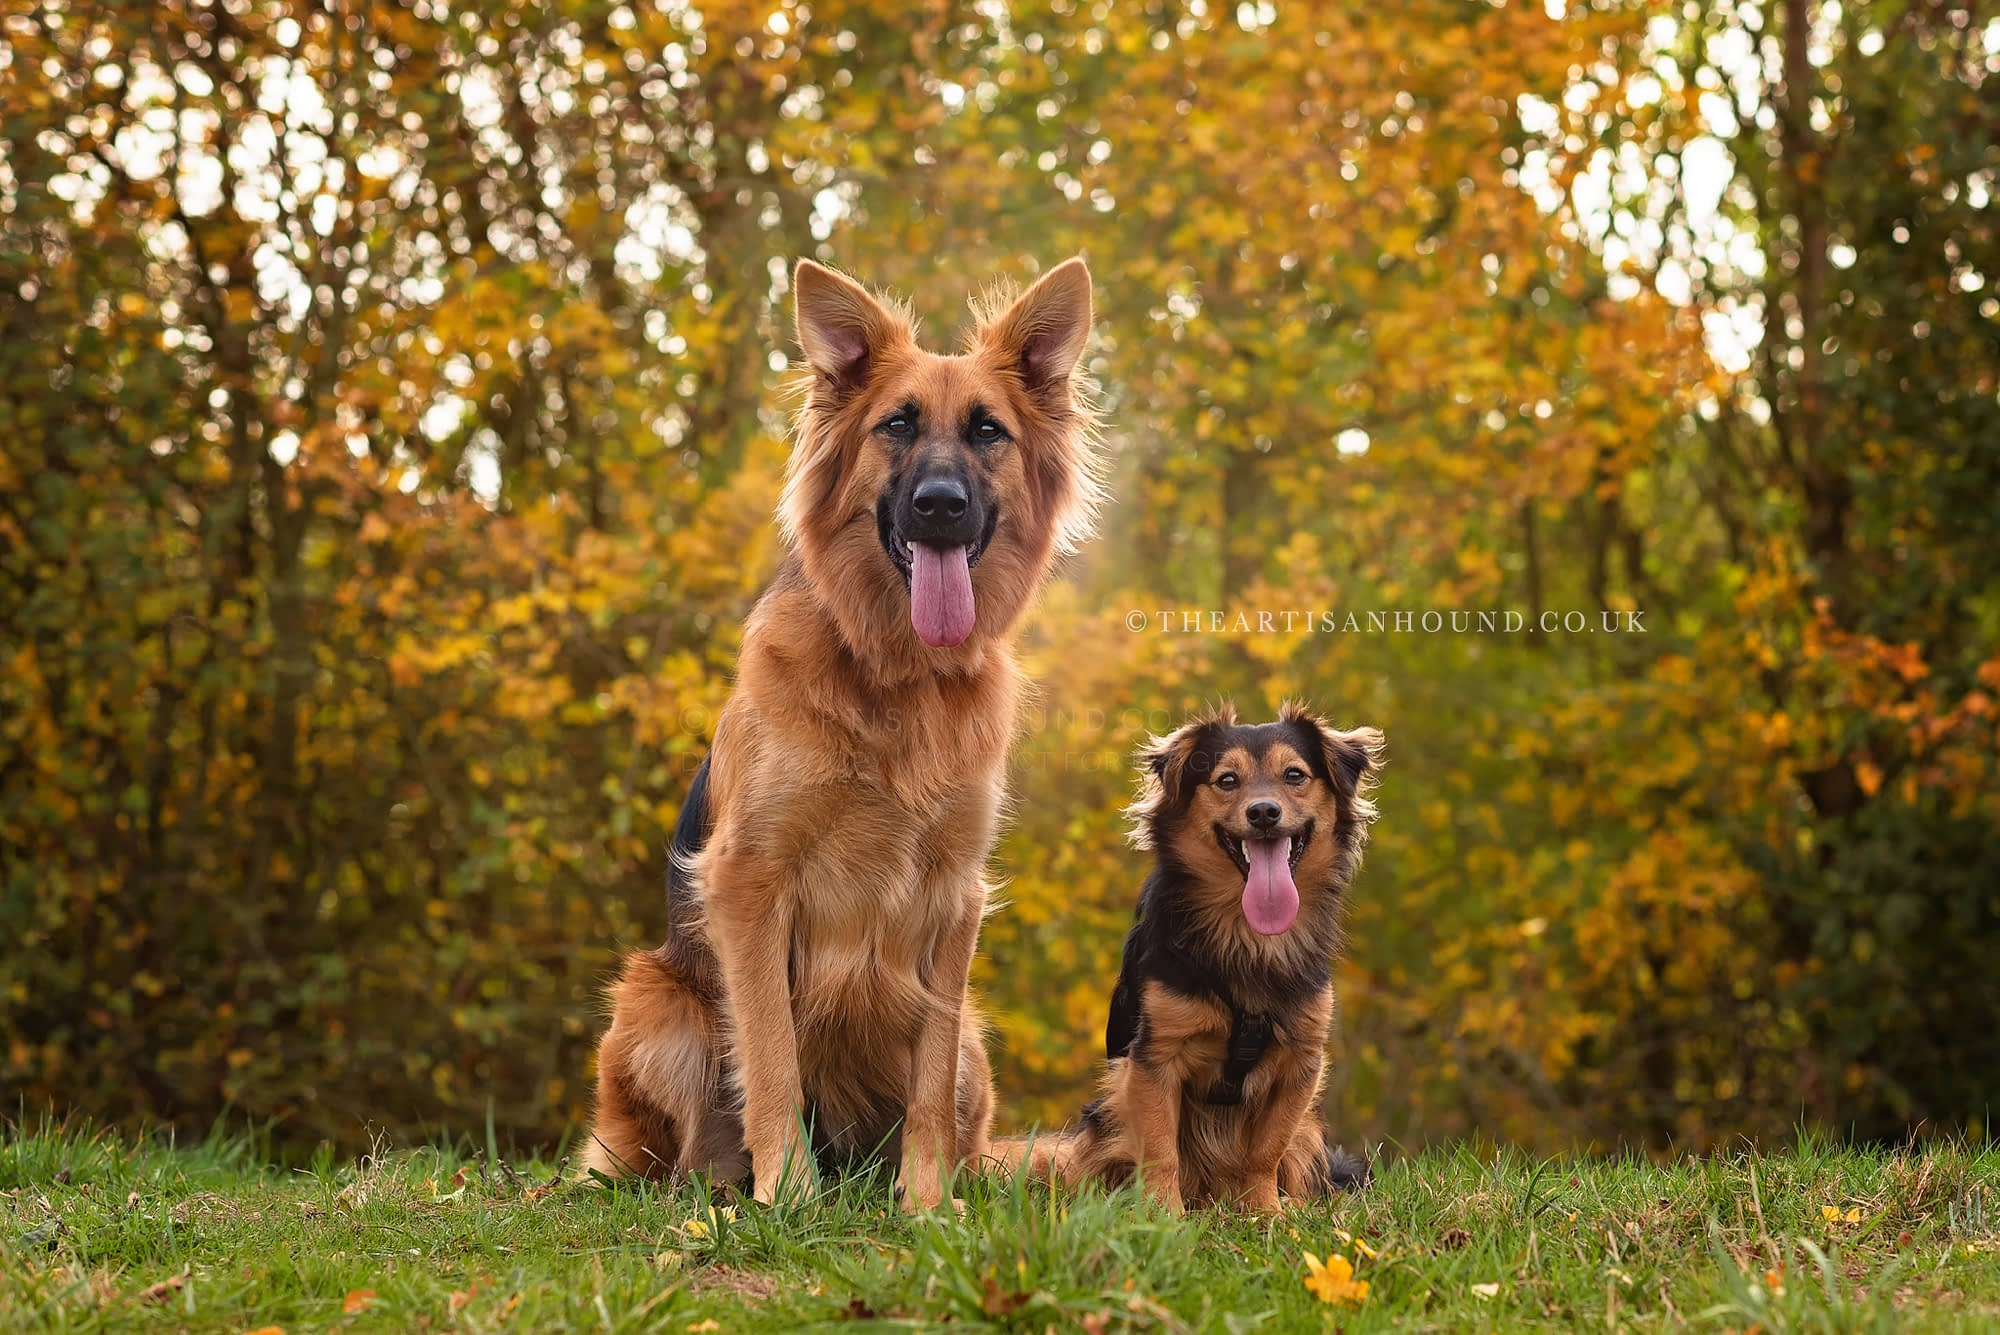 German Shepherd mix and small crossbreed sitting together in park